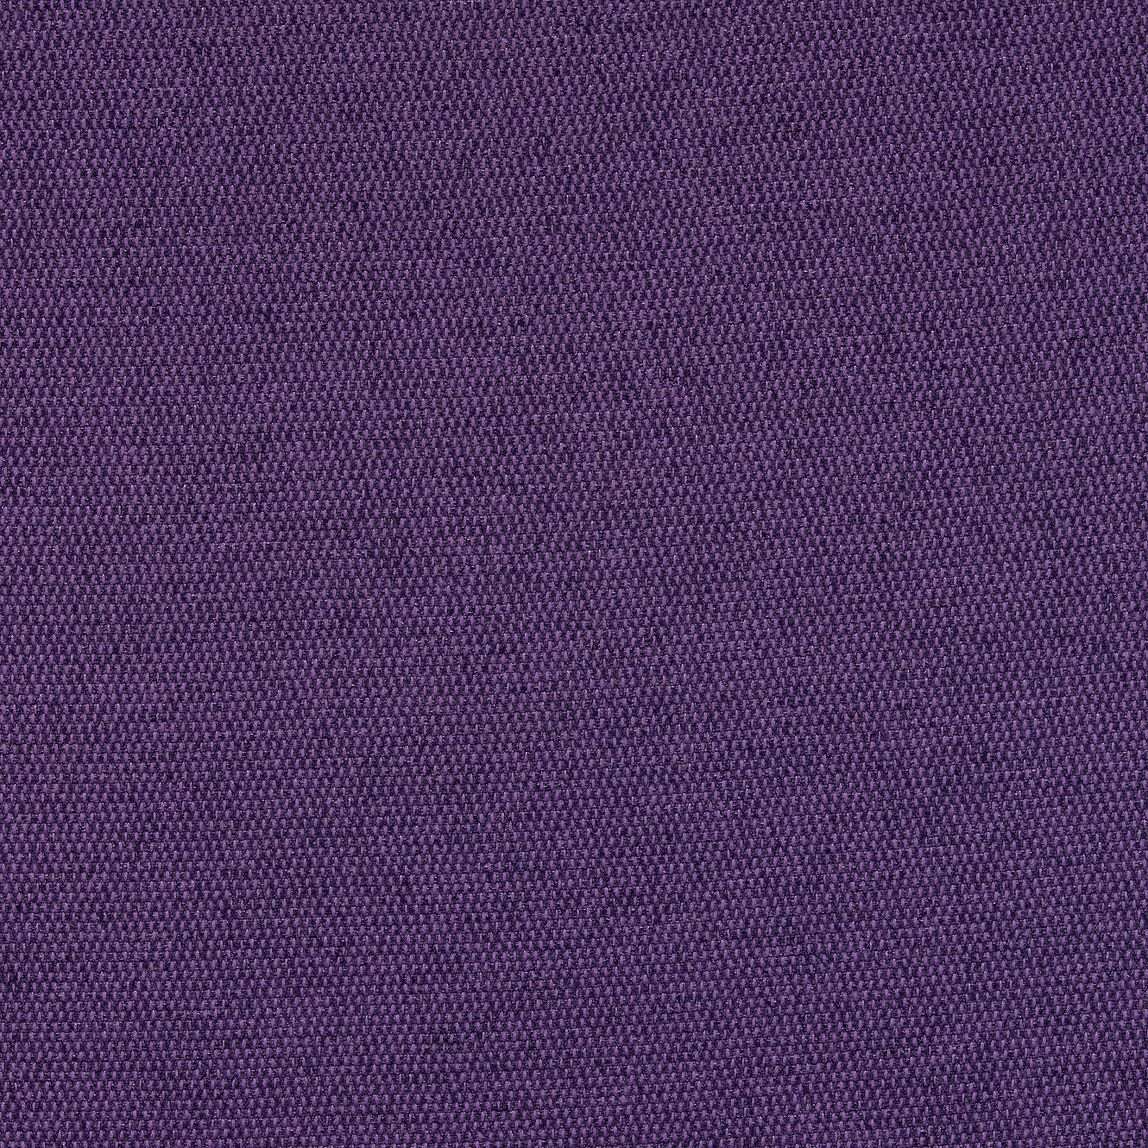 Messenger Lilac Swatch